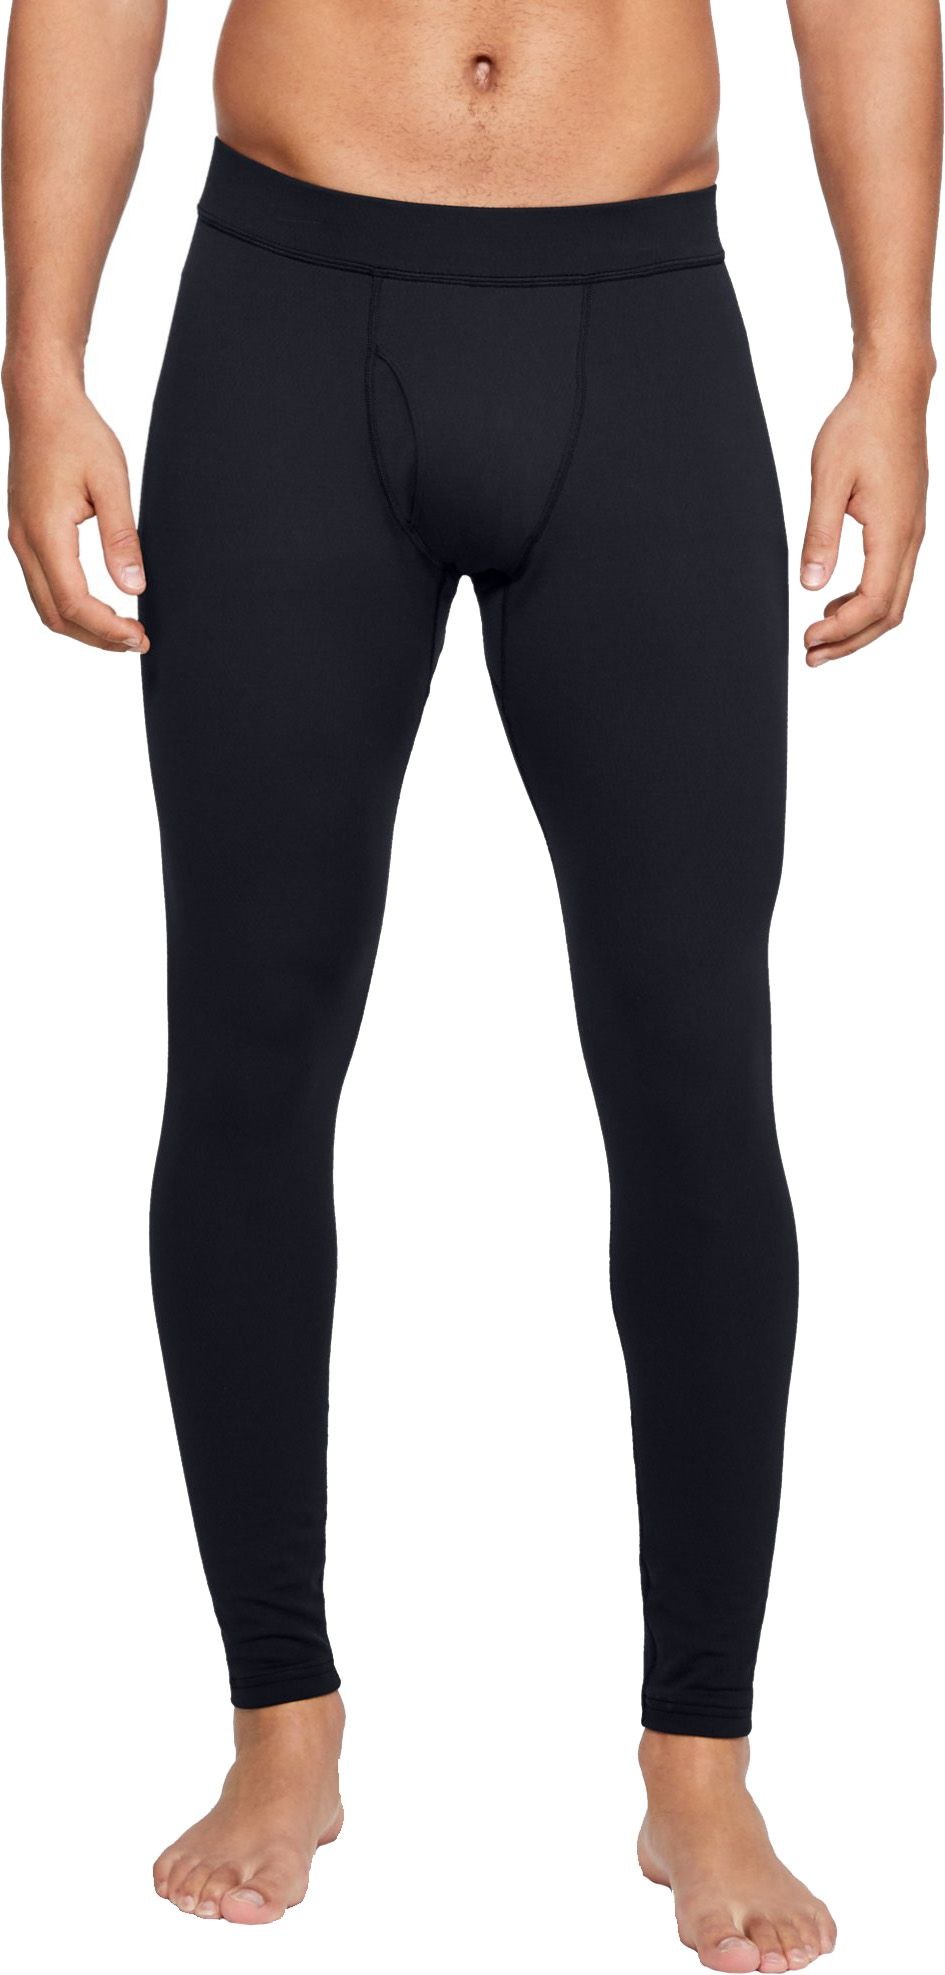 Under Armour Men's Packaged Base 2.0 Baselayer Leggings (Regular and Big & Tall), Size: Small, Black